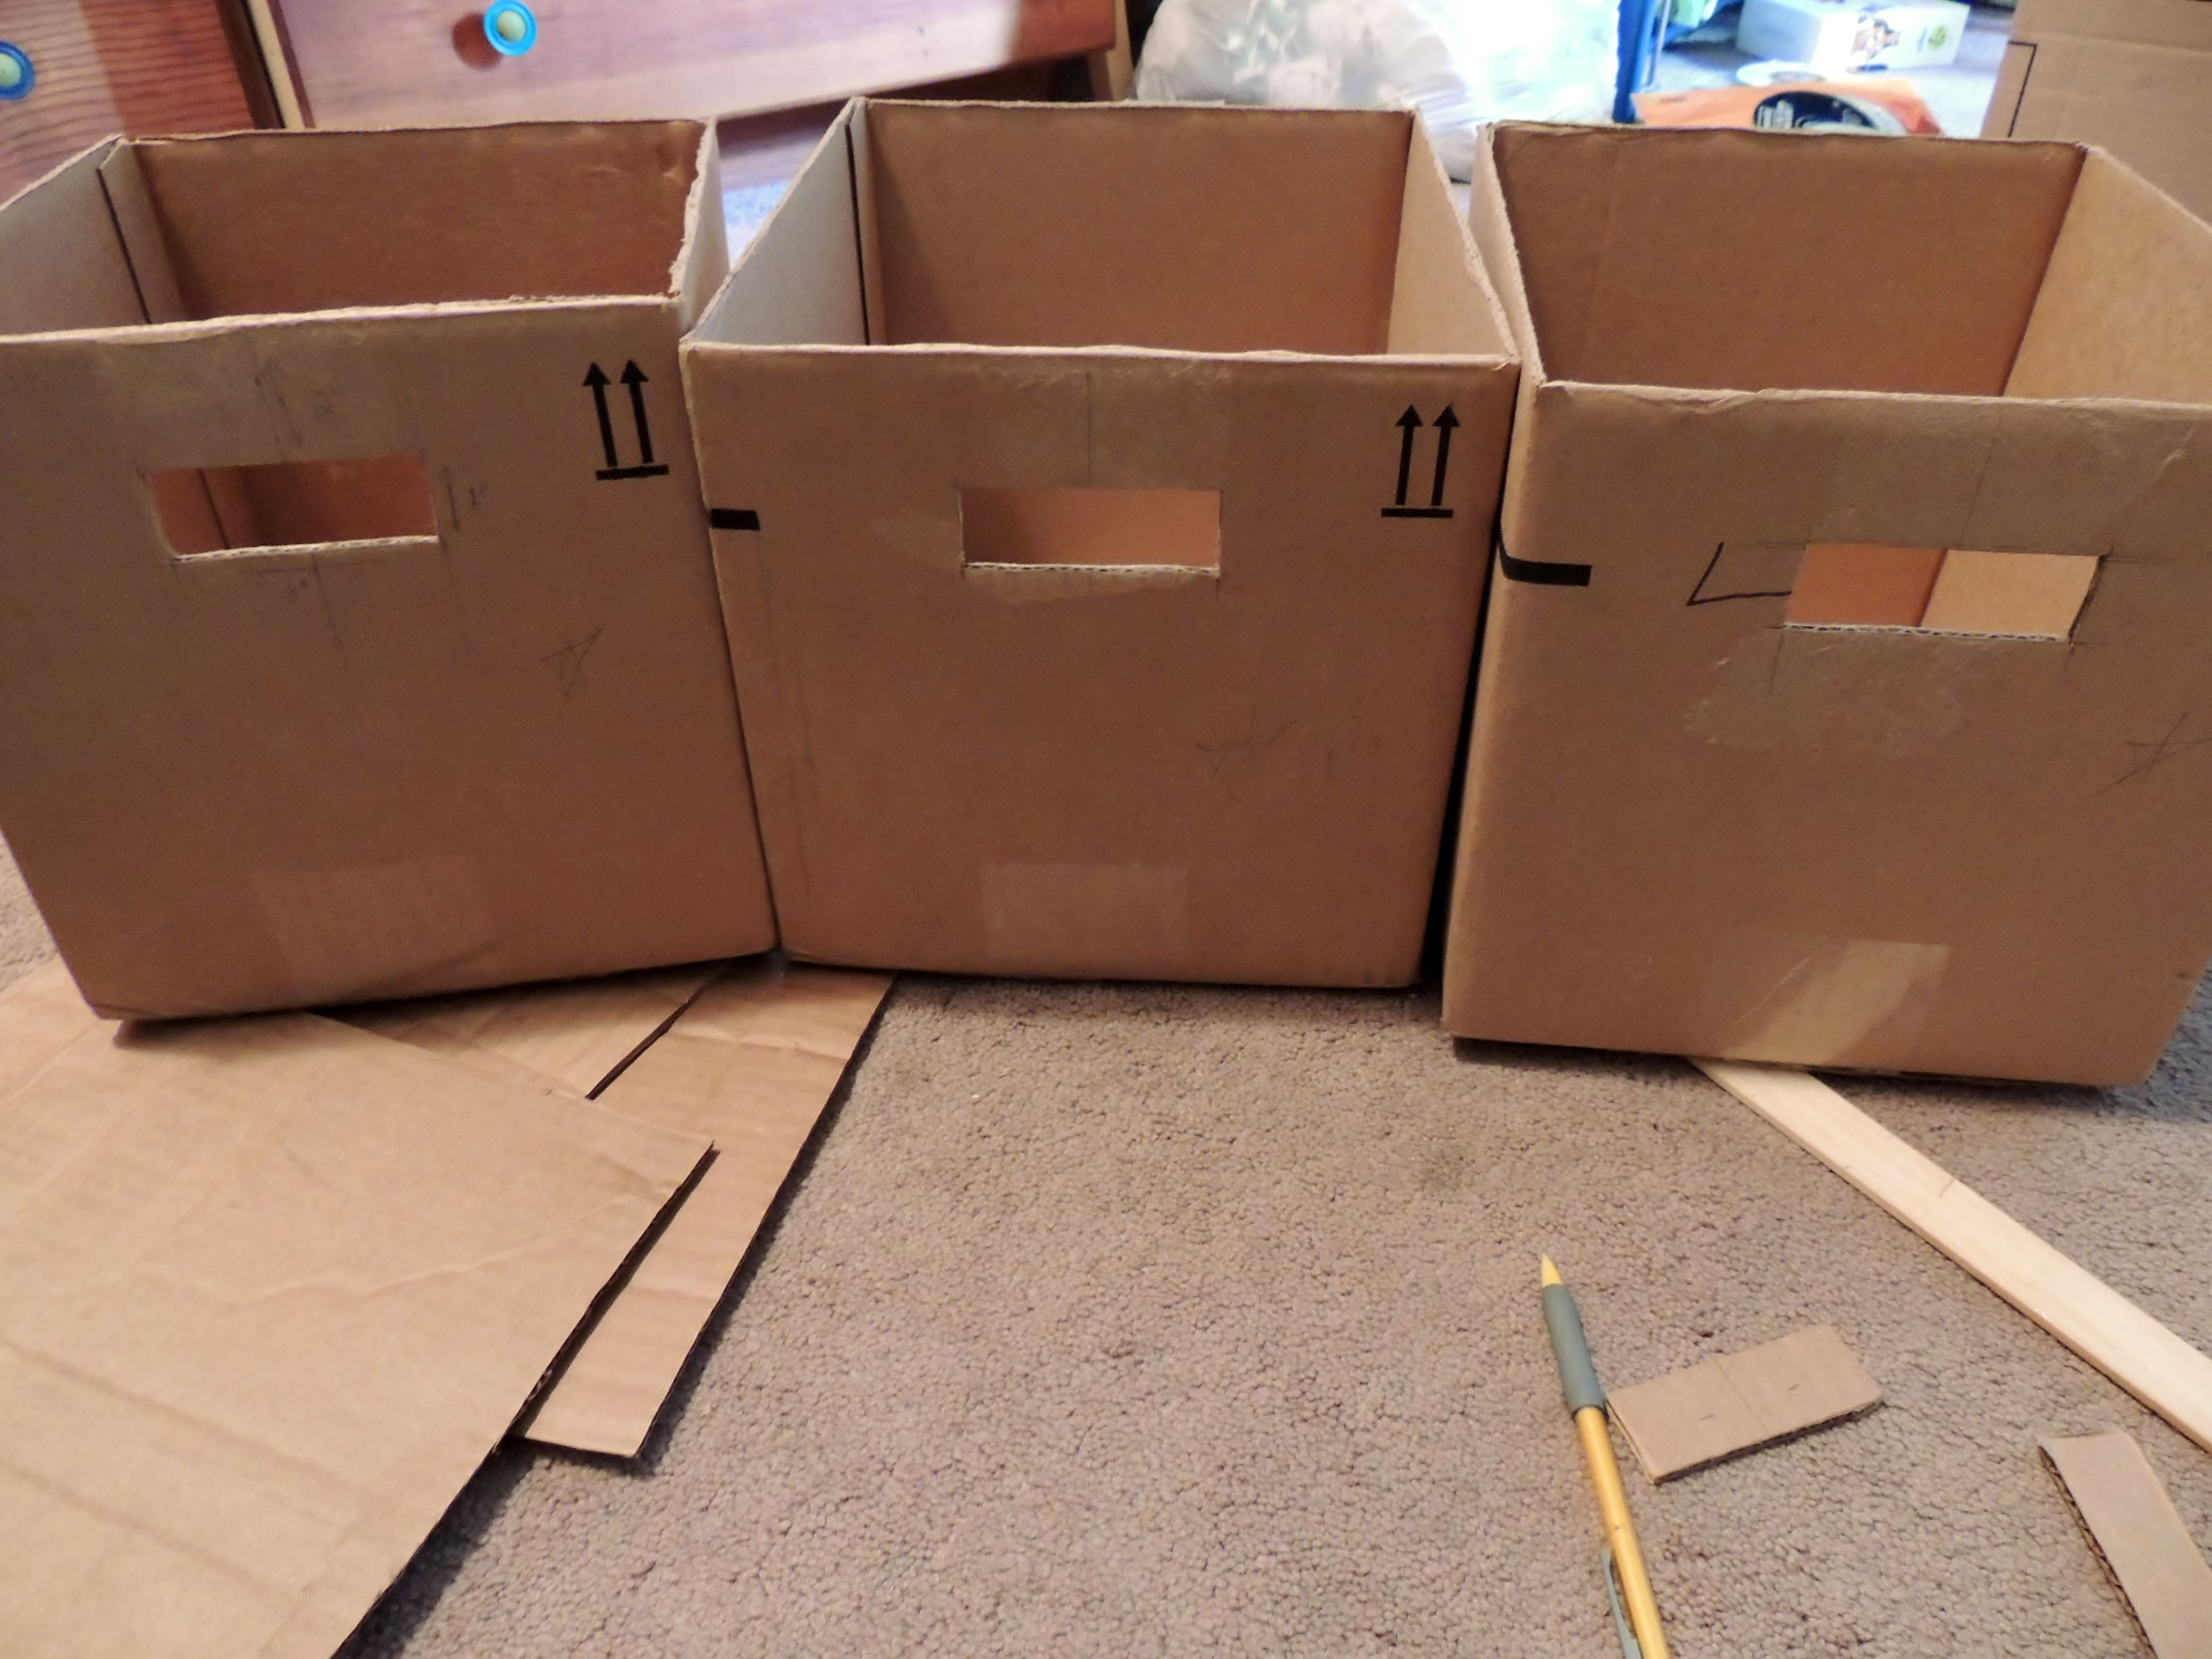 Extra large cardboard storage boxes - 17 Best Images About Diy Boxes On Pinterest Cute Storage Boxes Storage Bins And Fabric Covered